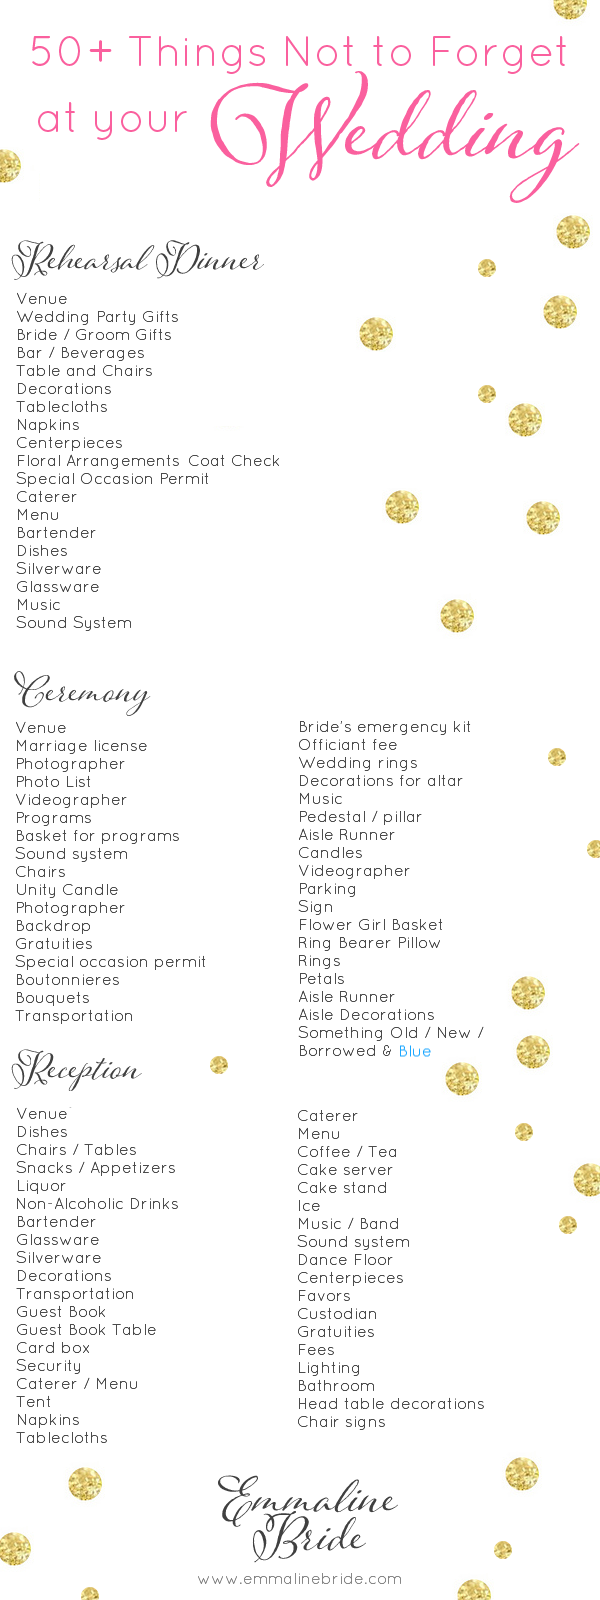 50 things not to forget at your wedding checklist the wedding